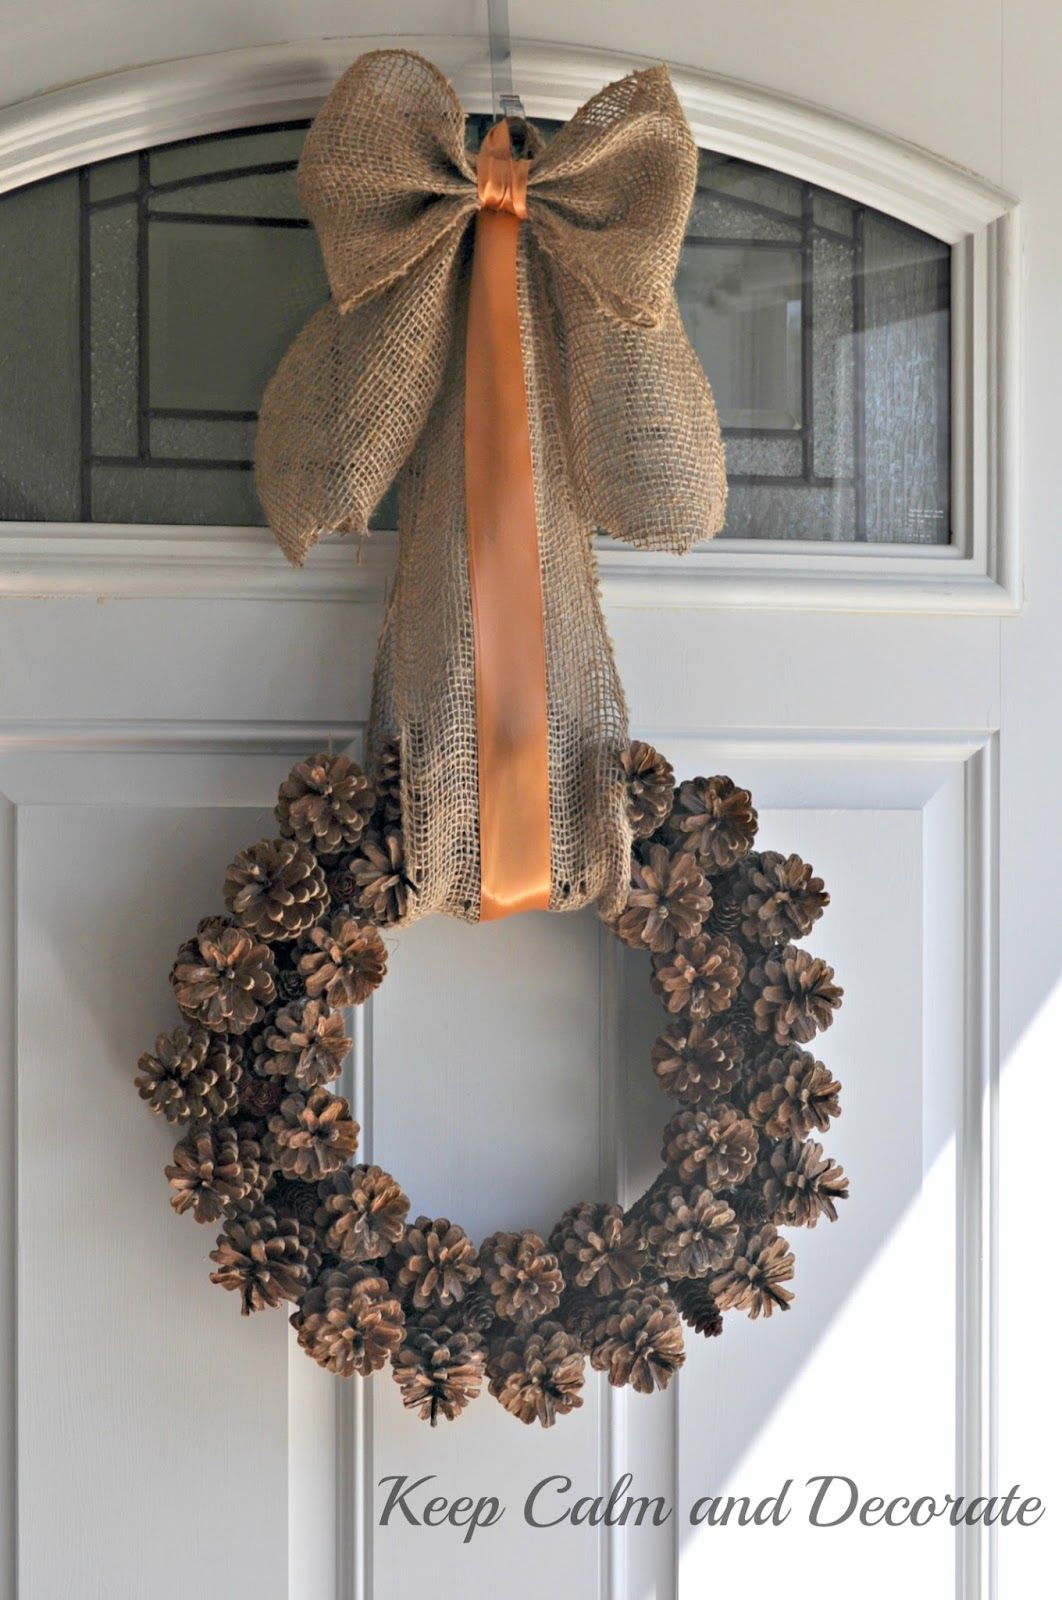 59 Ingenious Fall Wreath Designs Ready To Inspire You